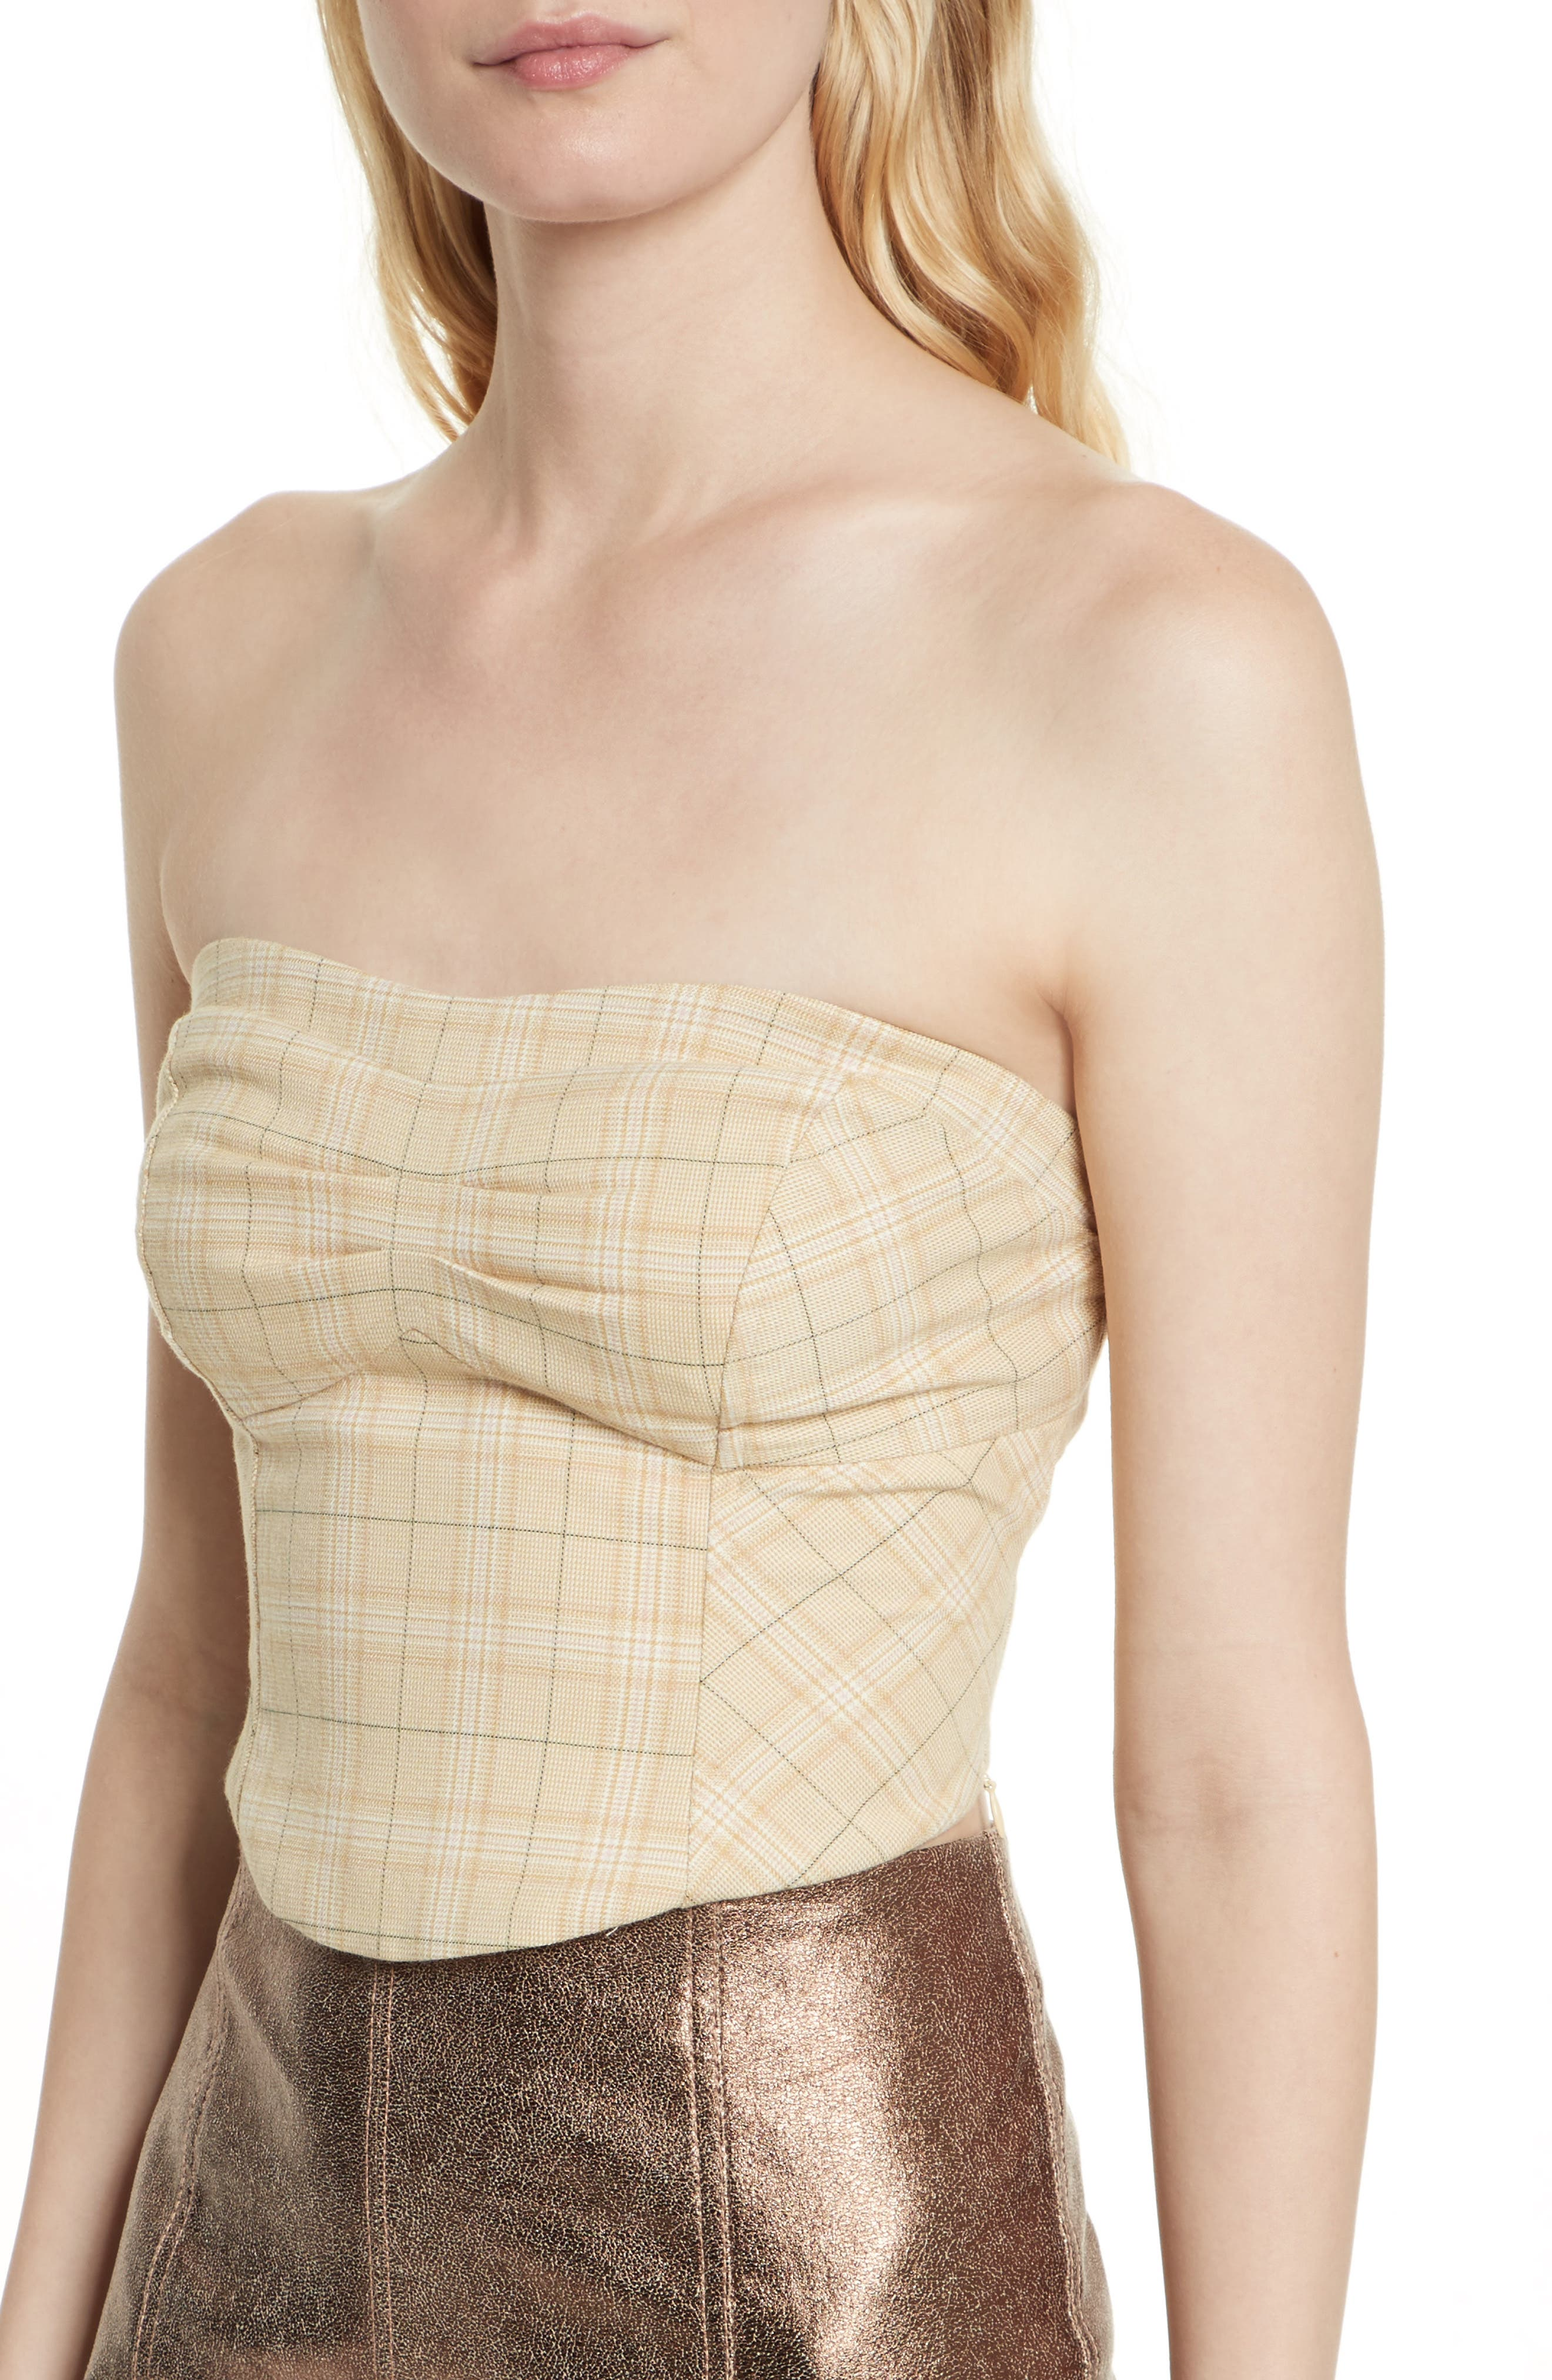 Out West Corset Top,                             Alternate thumbnail 6, color,                             Taupe